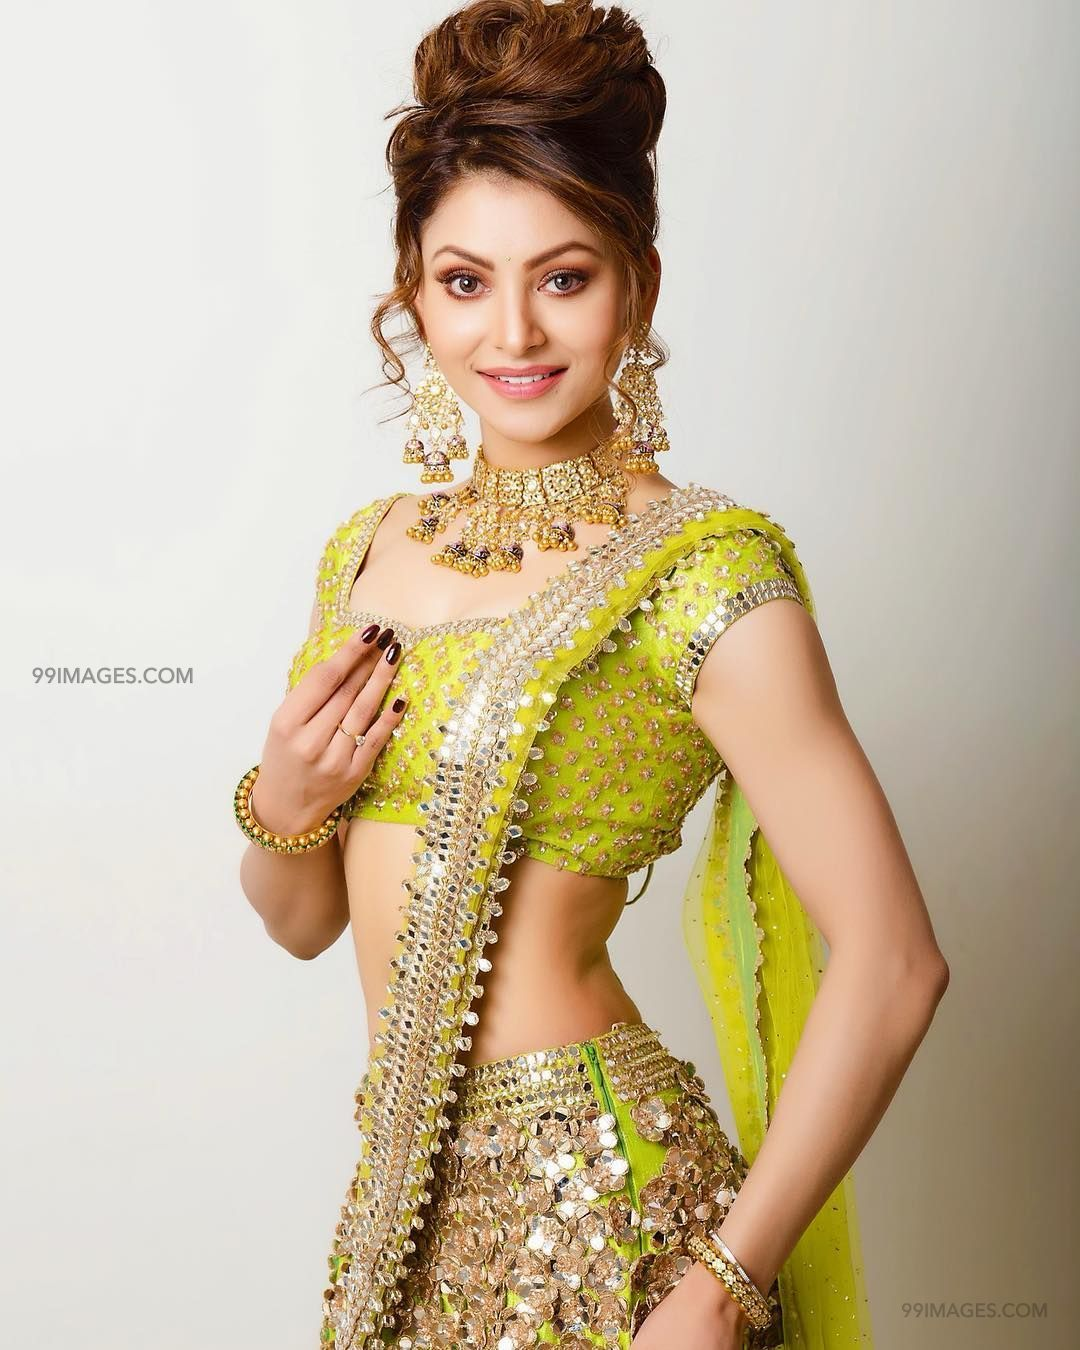 Urvashi Rautela Beautiful Photos & Mobile Wallpapers HD (Android/iPhone) (1080p) (36207) - Urvashi Rautela